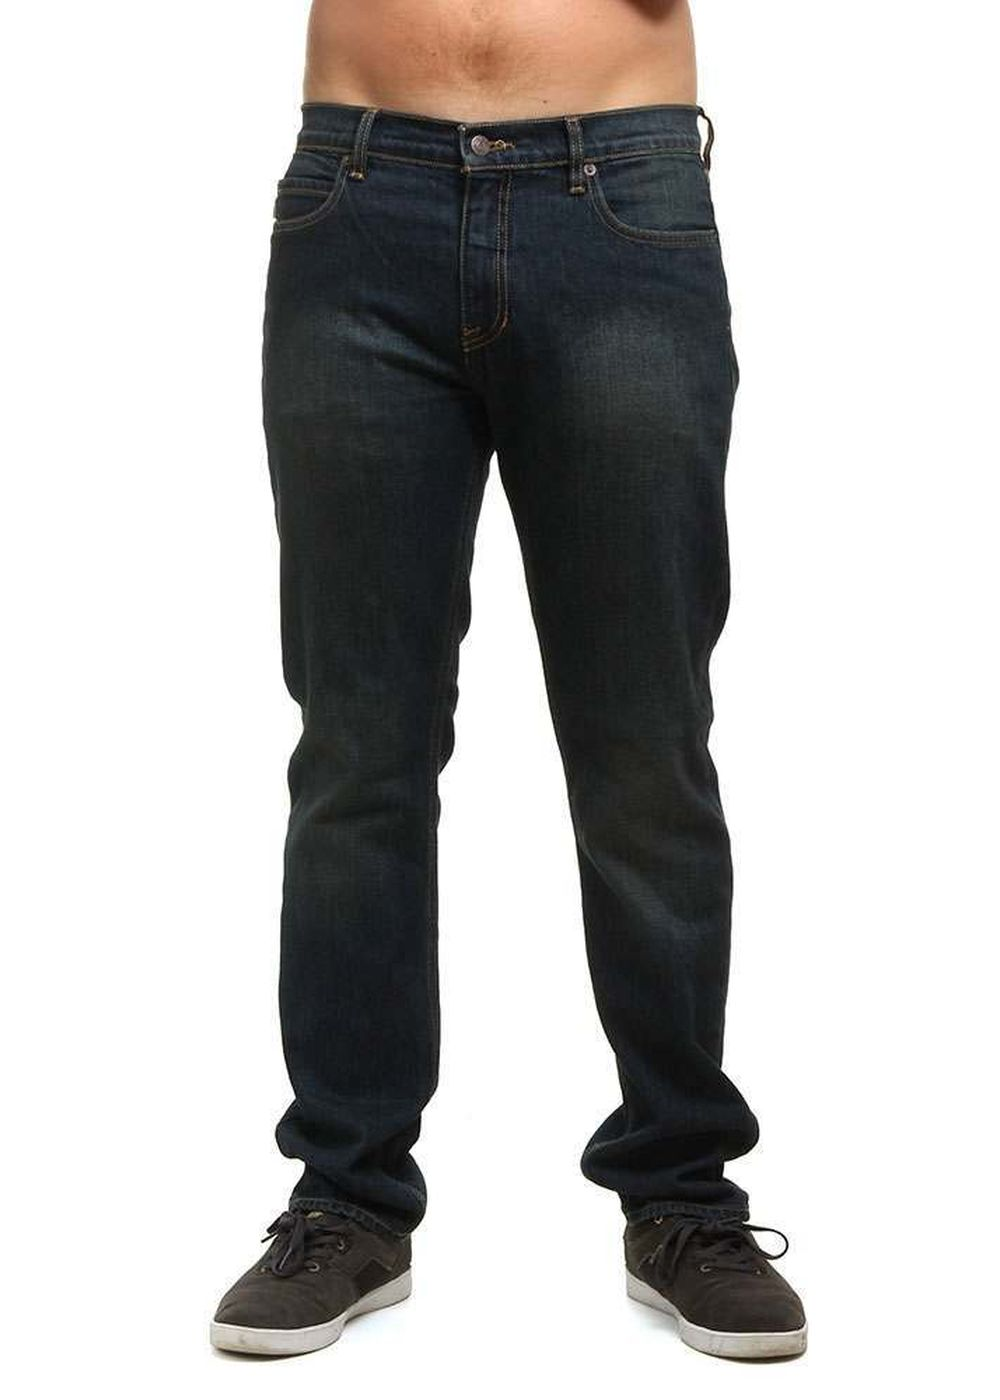 element-e03-sequoia-jeans-dark-used